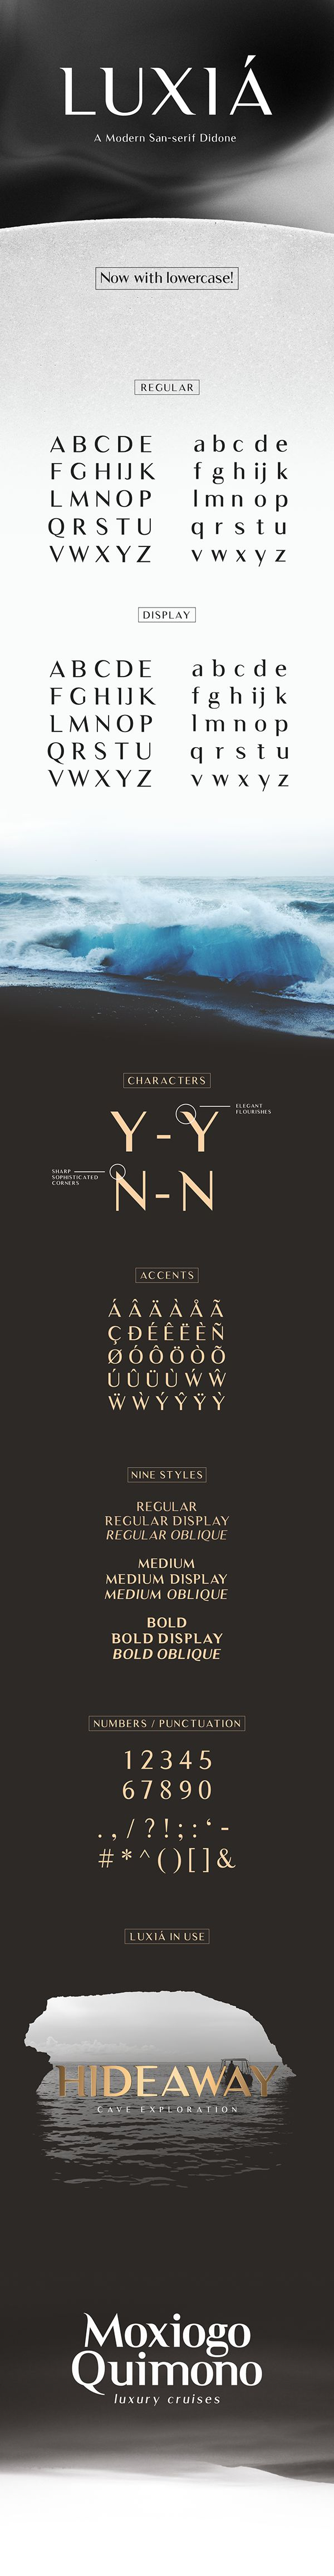 Luxia - Free Typeface